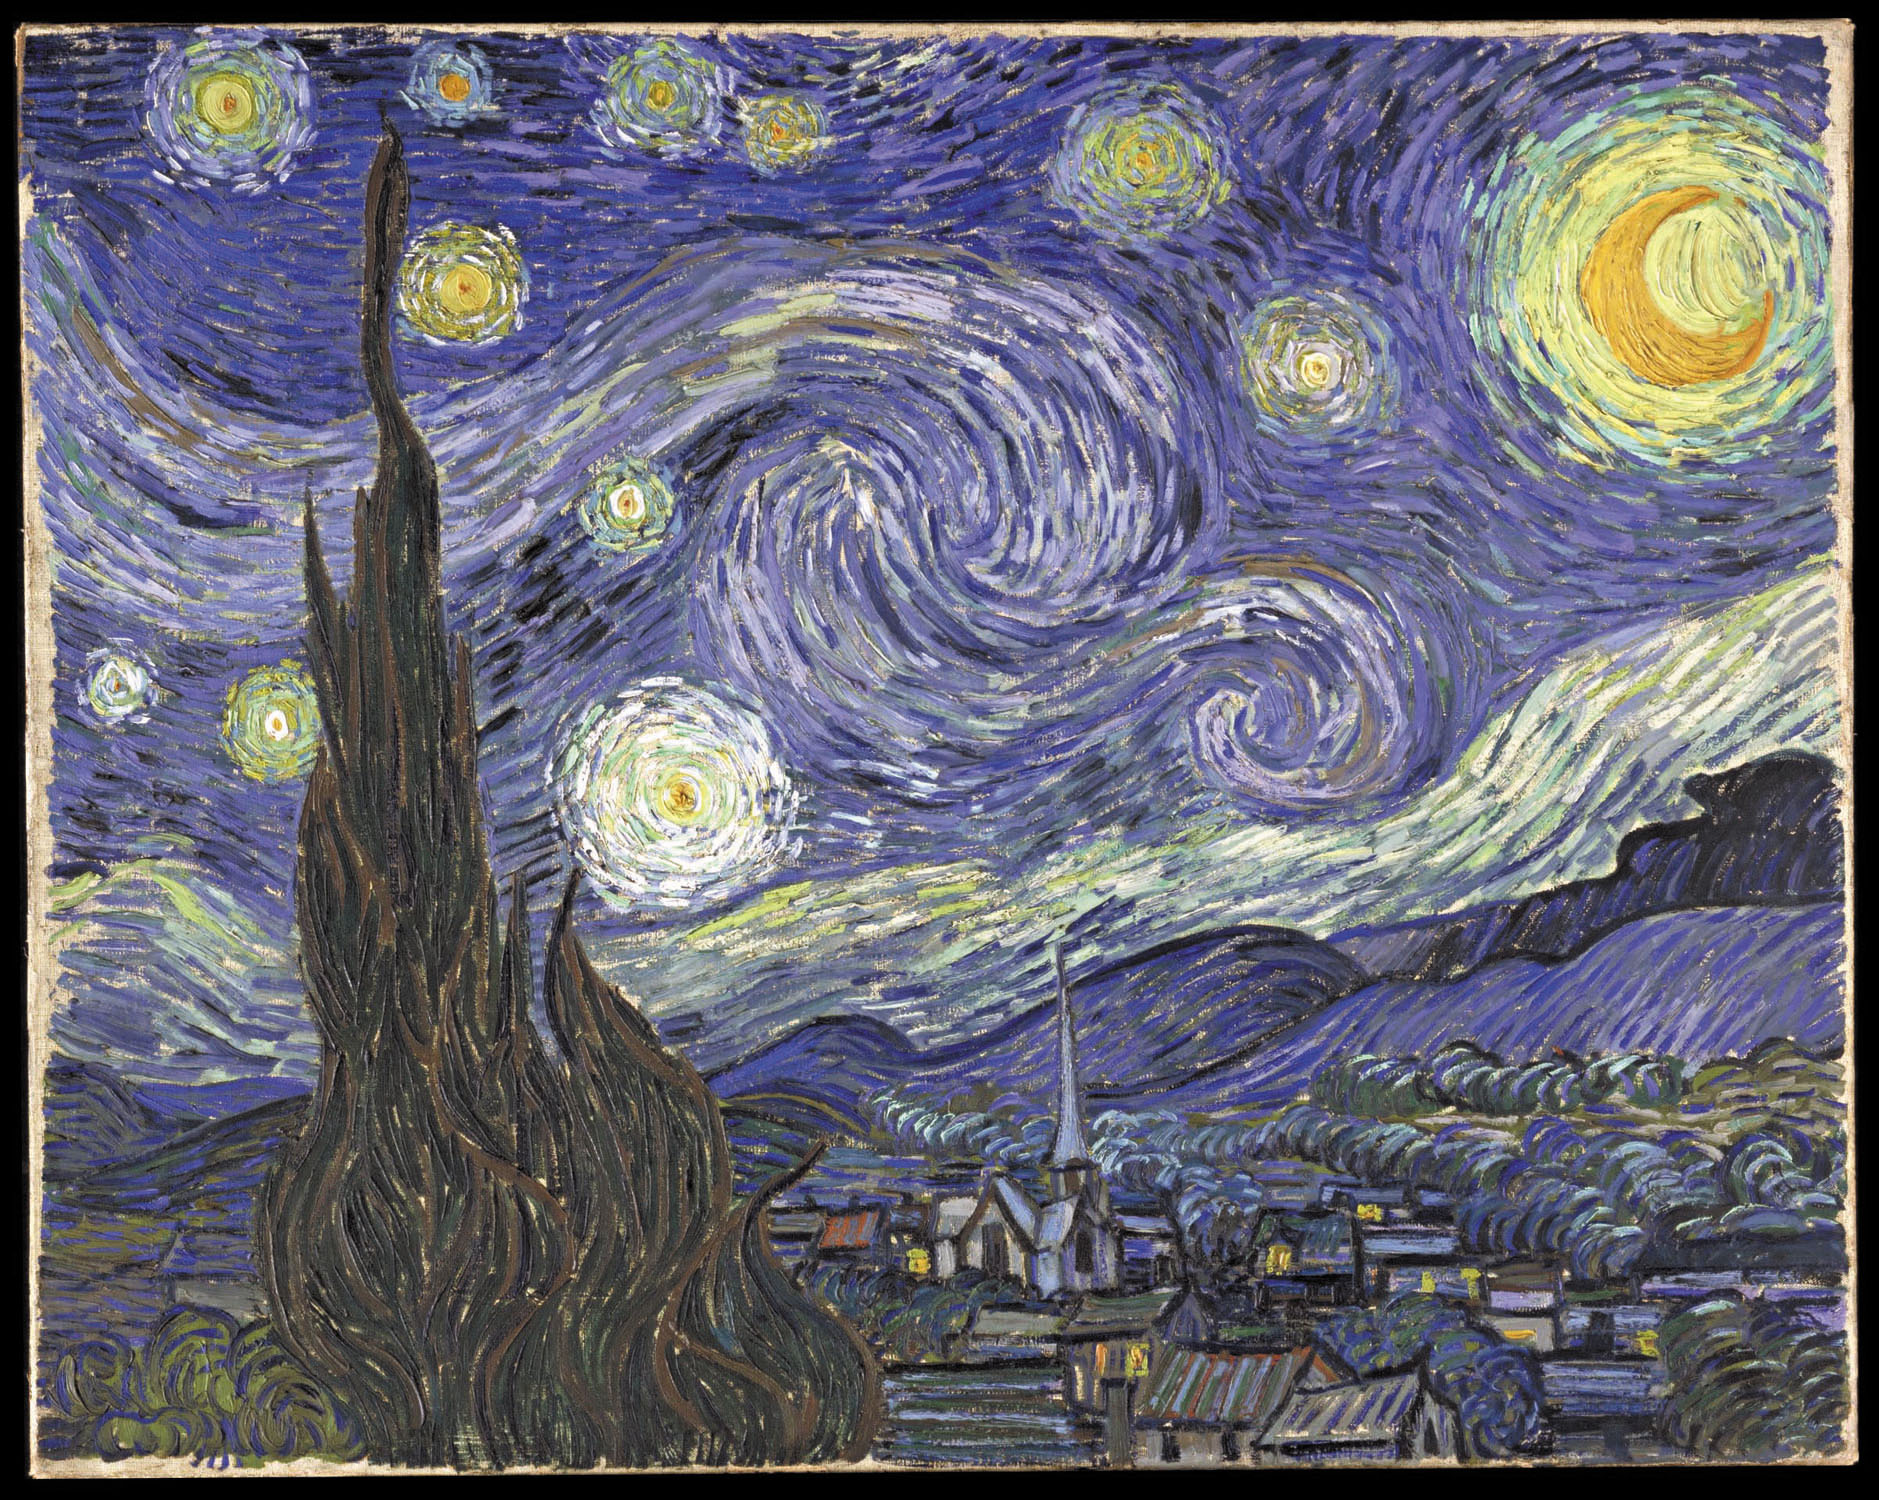 http://apod.nasa.gov/apod/image/0606/starrynight_vangogh_big.jpg